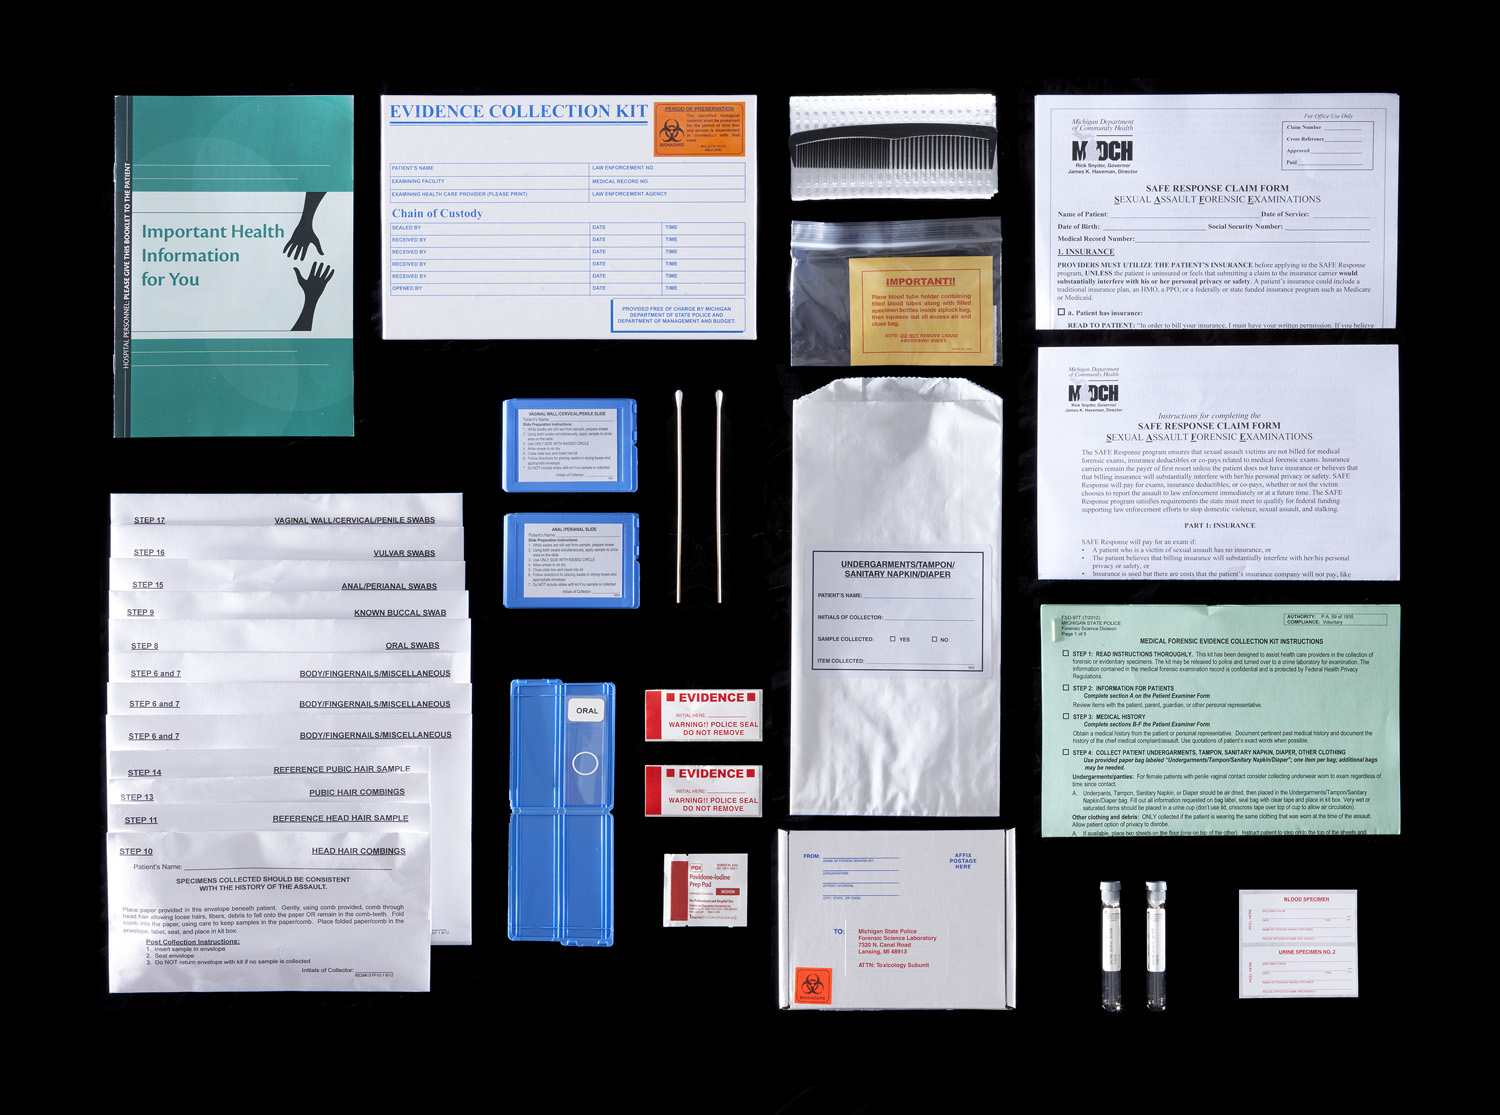 In a sexual-assault case, forensics technicians collect evidence from the most intimate parts of a survivor's body. Assembling a rape kit involves a head-to-toe exam and includes swabs of any place the perpetrator may have left DNA in the form of semen, saliva, hair or skin cells. The victim is also extensively photographed and interviewed. The entire process can take up to four hours.